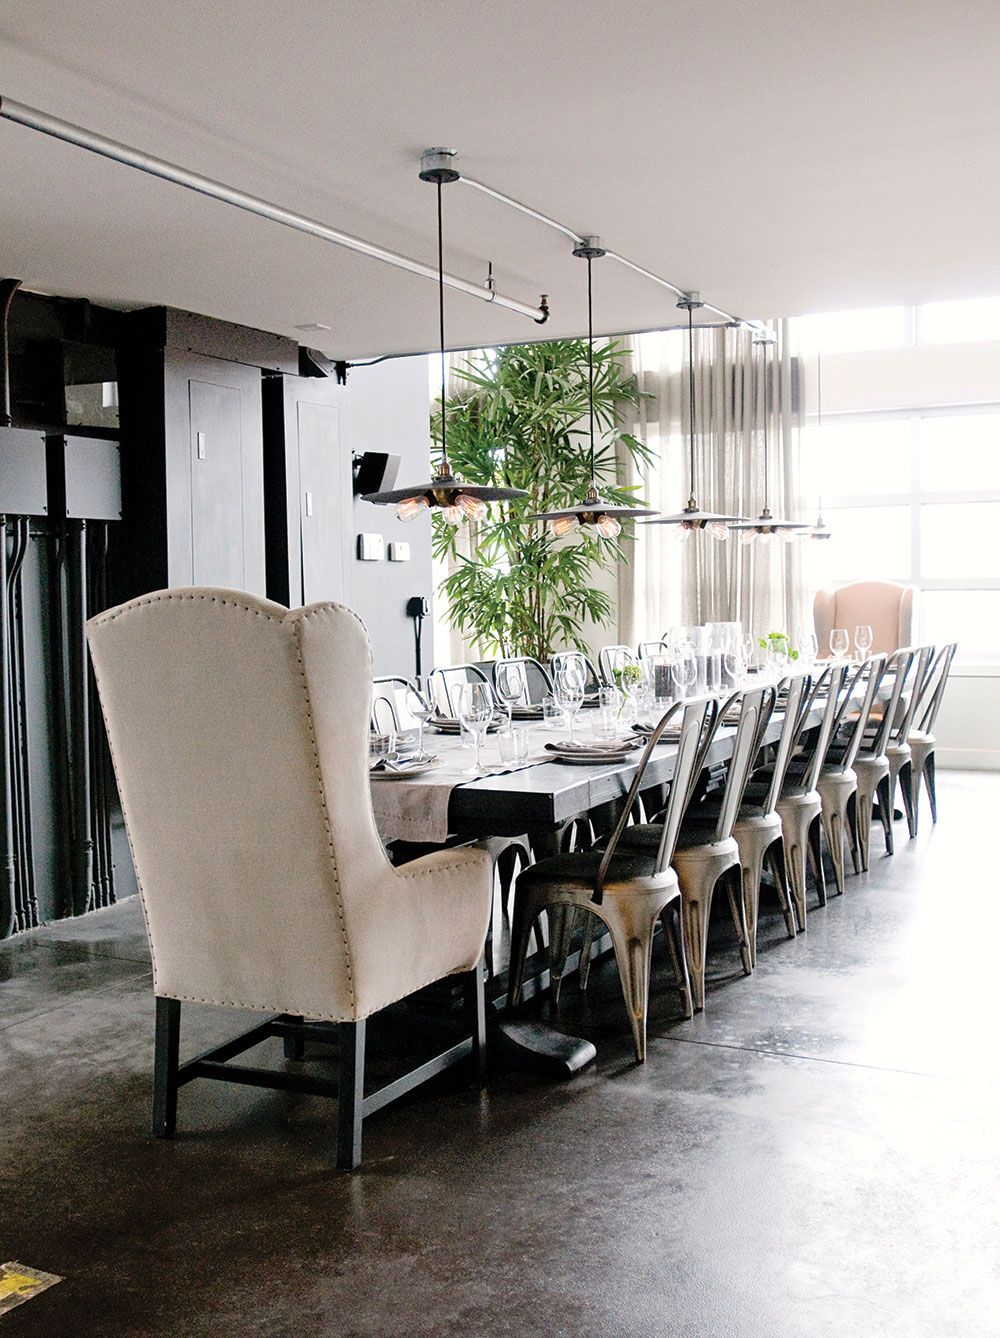 The 16 Foot Dining Table Surrounded By Stackable French Cafe Chairs Restoration Hardware